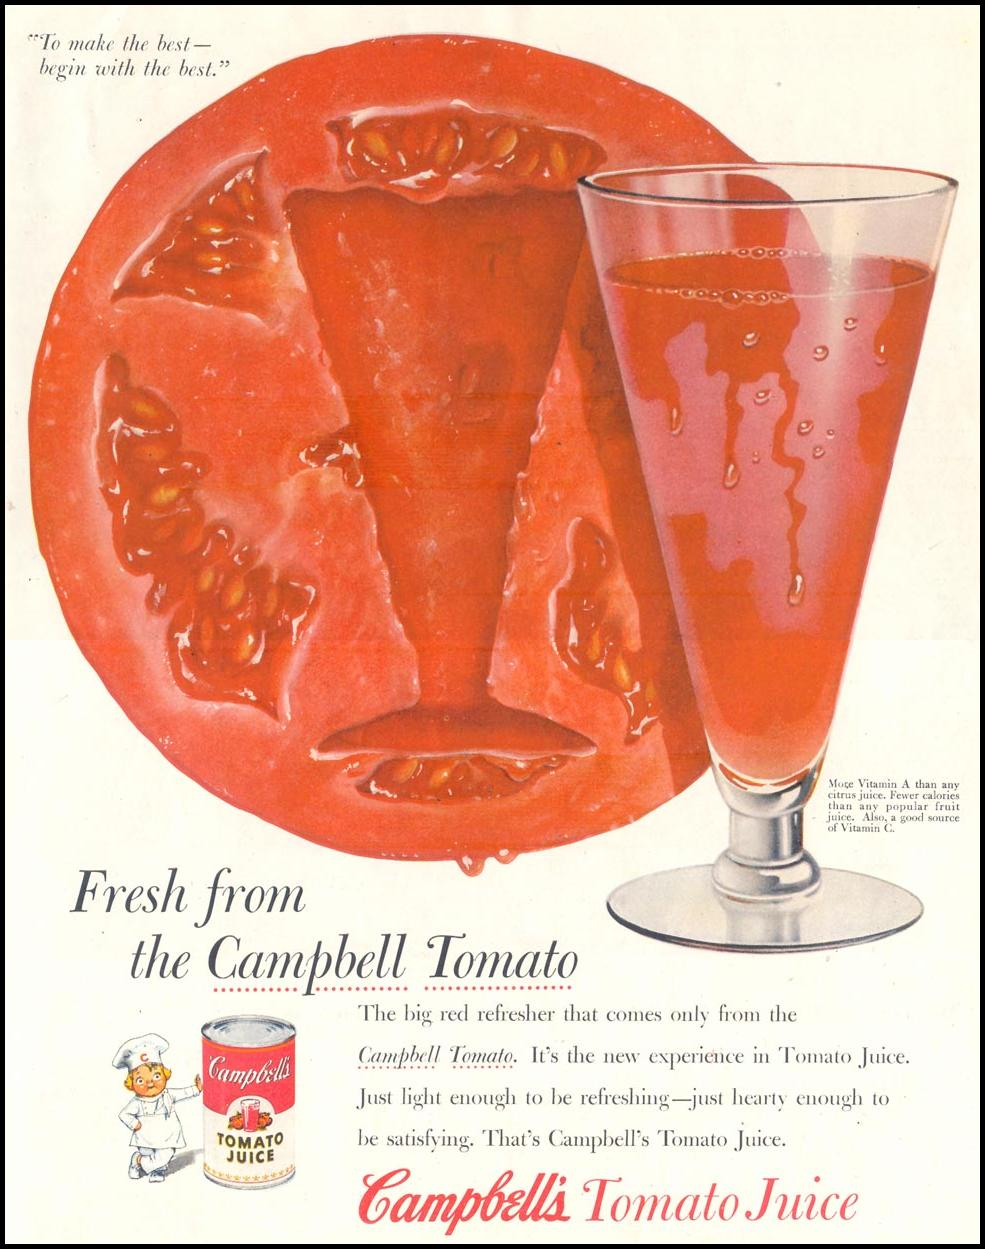 CAMPBELL'S TOMATO JUICE SATURDAY EVENING POST 03/26/1955